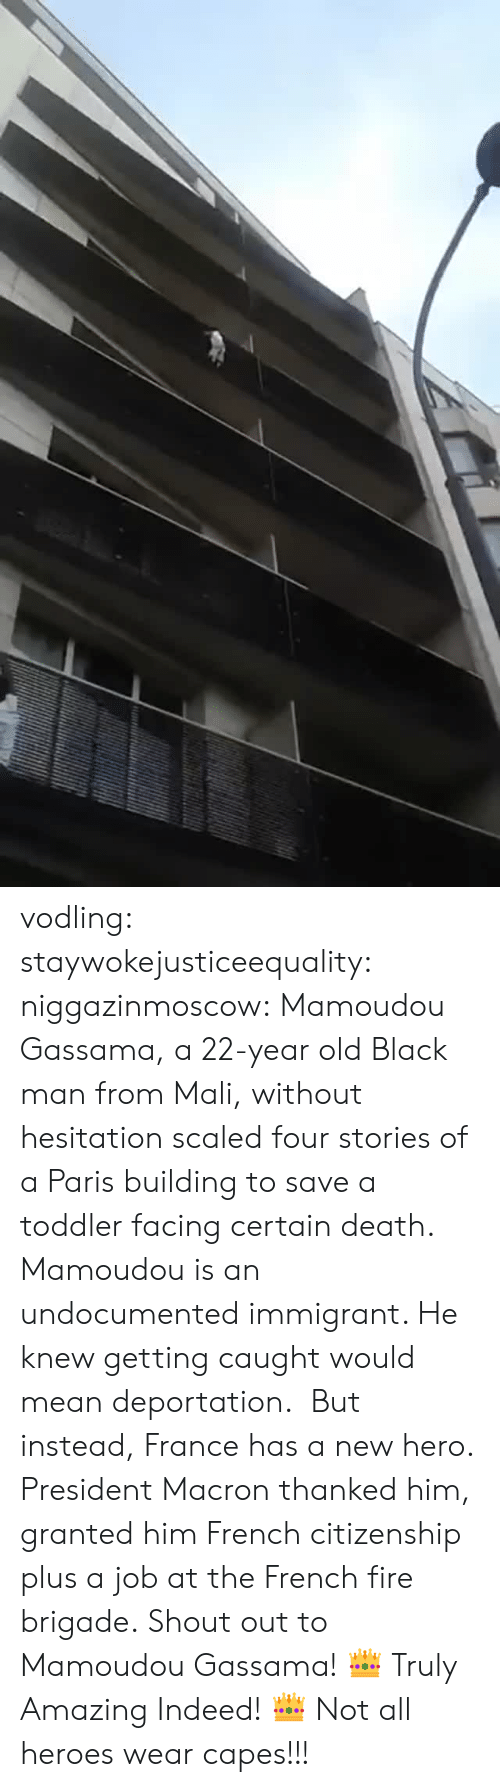 Fire, Tumblr, and Black: vodling:  staywokejusticeequality:  niggazinmoscow:  Mamoudou Gassama, a 22-year old Black man from Mali, without hesitation   scaled four stories of a Paris building to save a toddler facing certain death. Mamoudou is an undocumented immigrant. He knew getting caught would mean deportation. But instead, France has a new hero. President Macron thanked him, granted him French citizenship plus a job at the French fire brigade. Shout out to Mamoudou Gassama!    👑 Truly Amazing Indeed! 👑    Not all heroes wear capes!!!